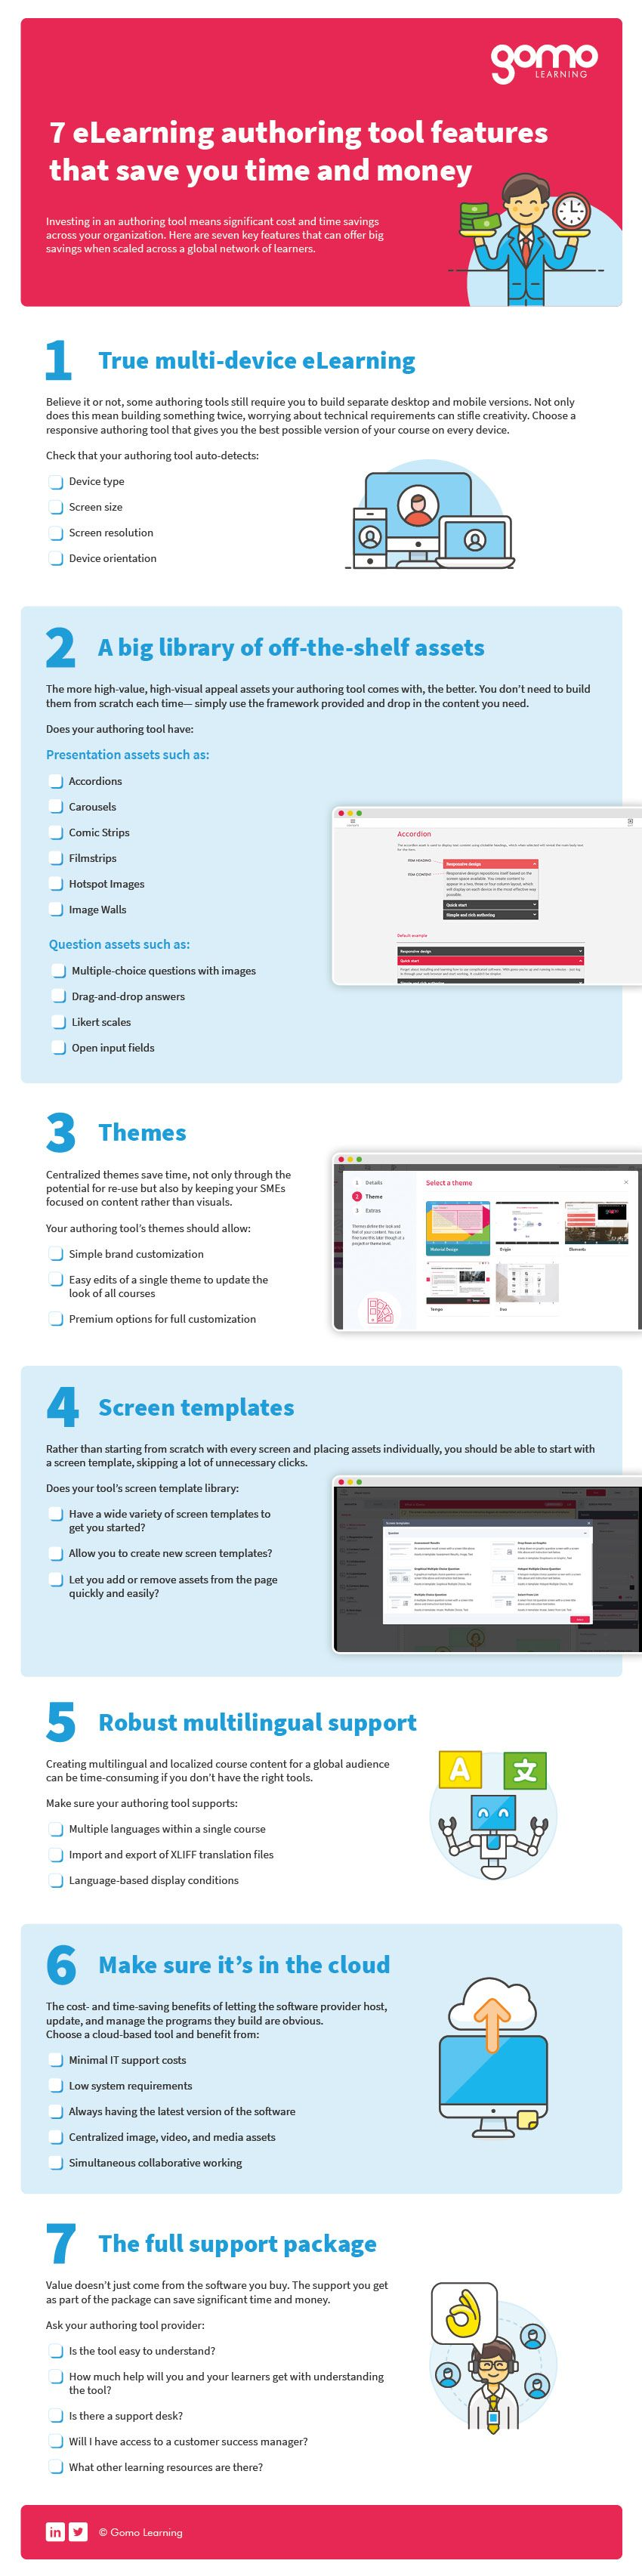 Full-size version of 7 eLearnign authoring tool features that save you time and money checklist